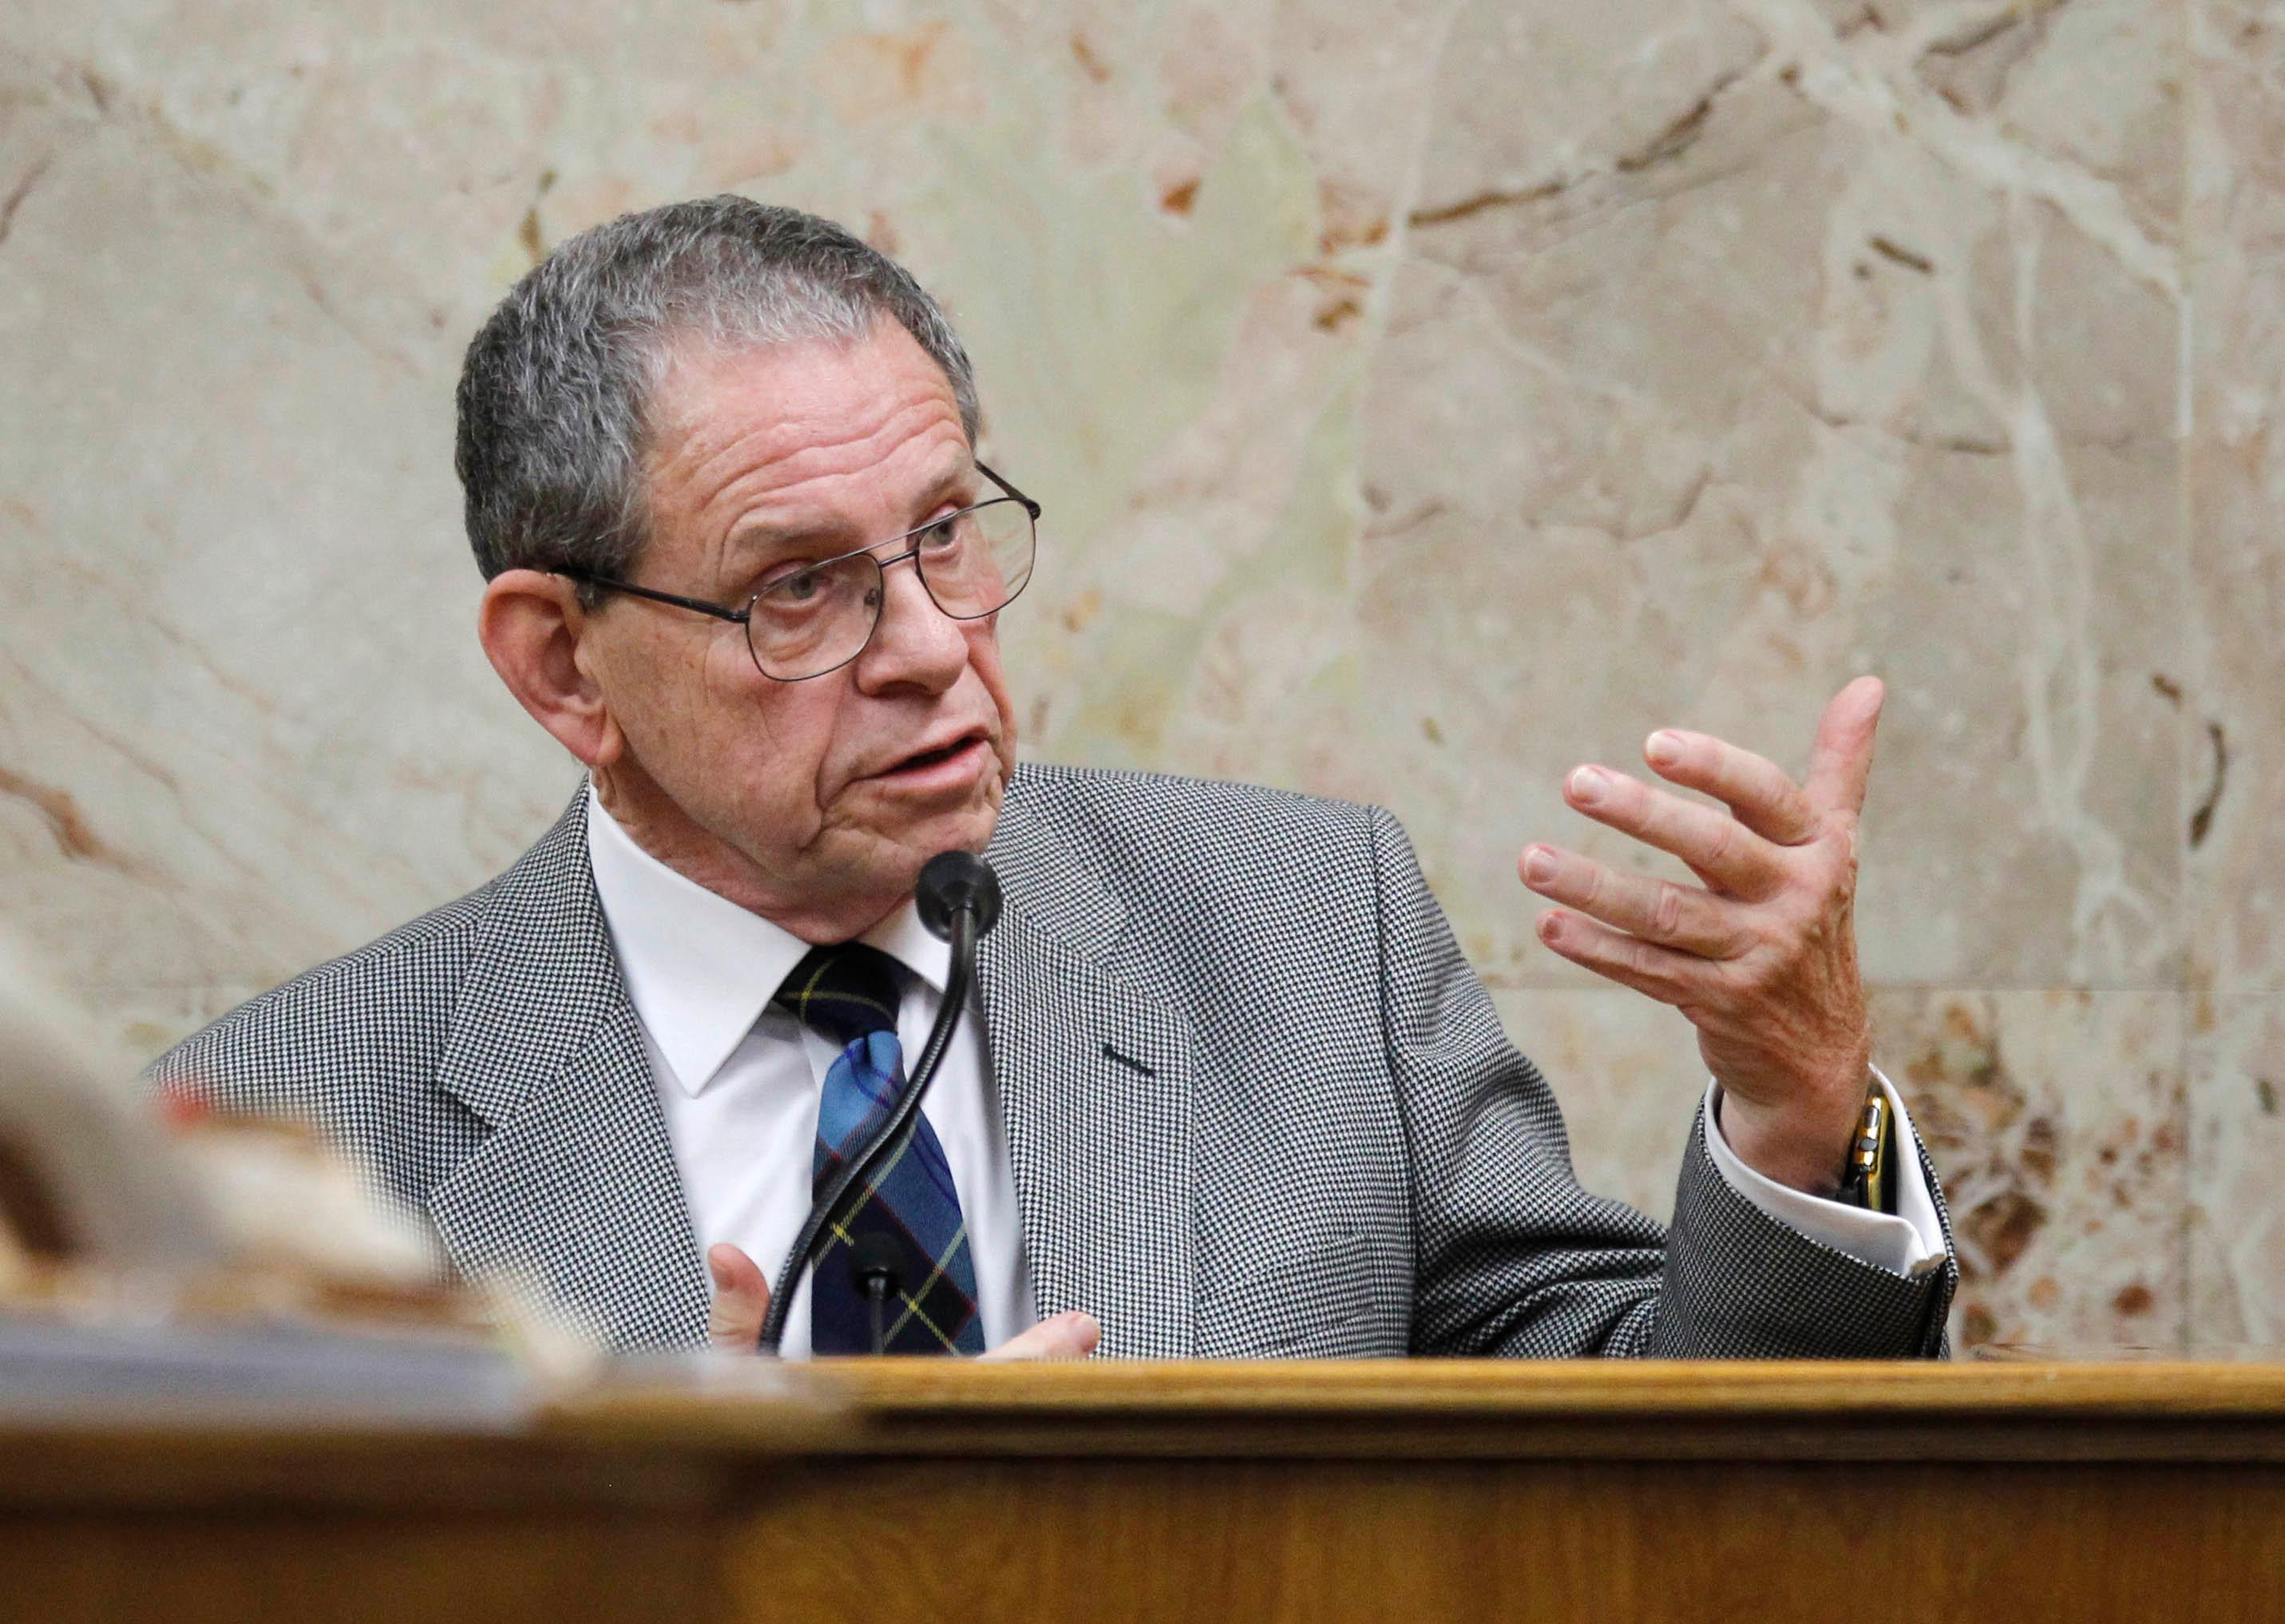 Thomas Doyle testifies in John Bernard Feit's trial for the 1960 murder of Irene Garza Tuesday, December 5, 2017, at the Hidalgo County Courthouse in Edinburg. Doyle testified as an expert witness on the Catholic Church's cover-ups of crimes similar to the Irene Garza murder.  (Nathan Lambrecht/The Monitor/Pool)